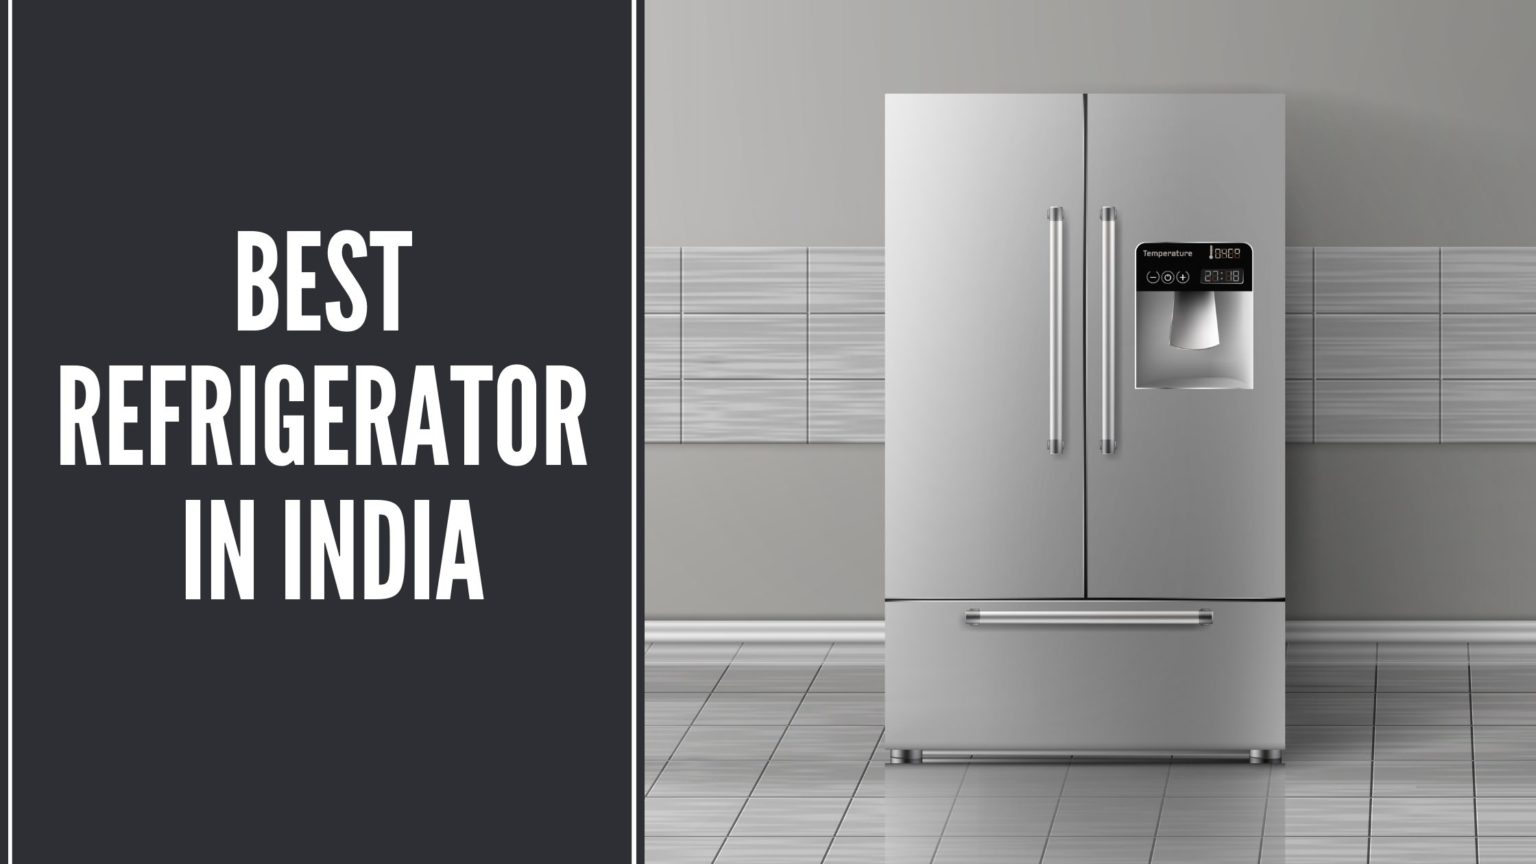 5 Best Frost Free Refrigerator in India - Buyer's Guide & Reviews!